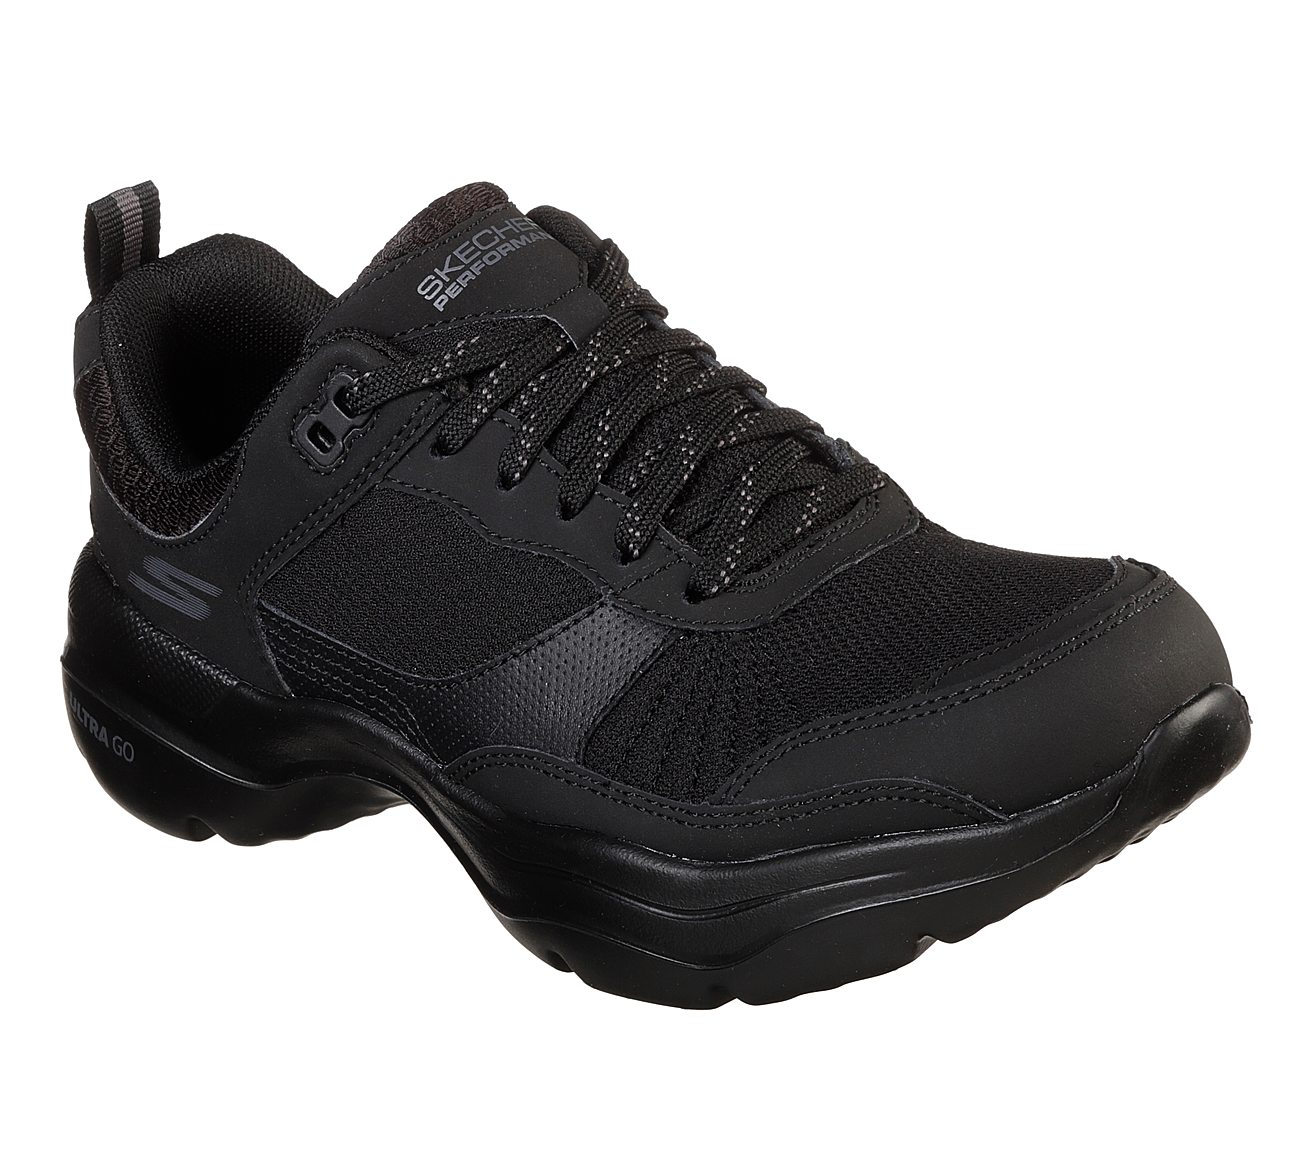 Skechers GOwalk Mantra Ultra